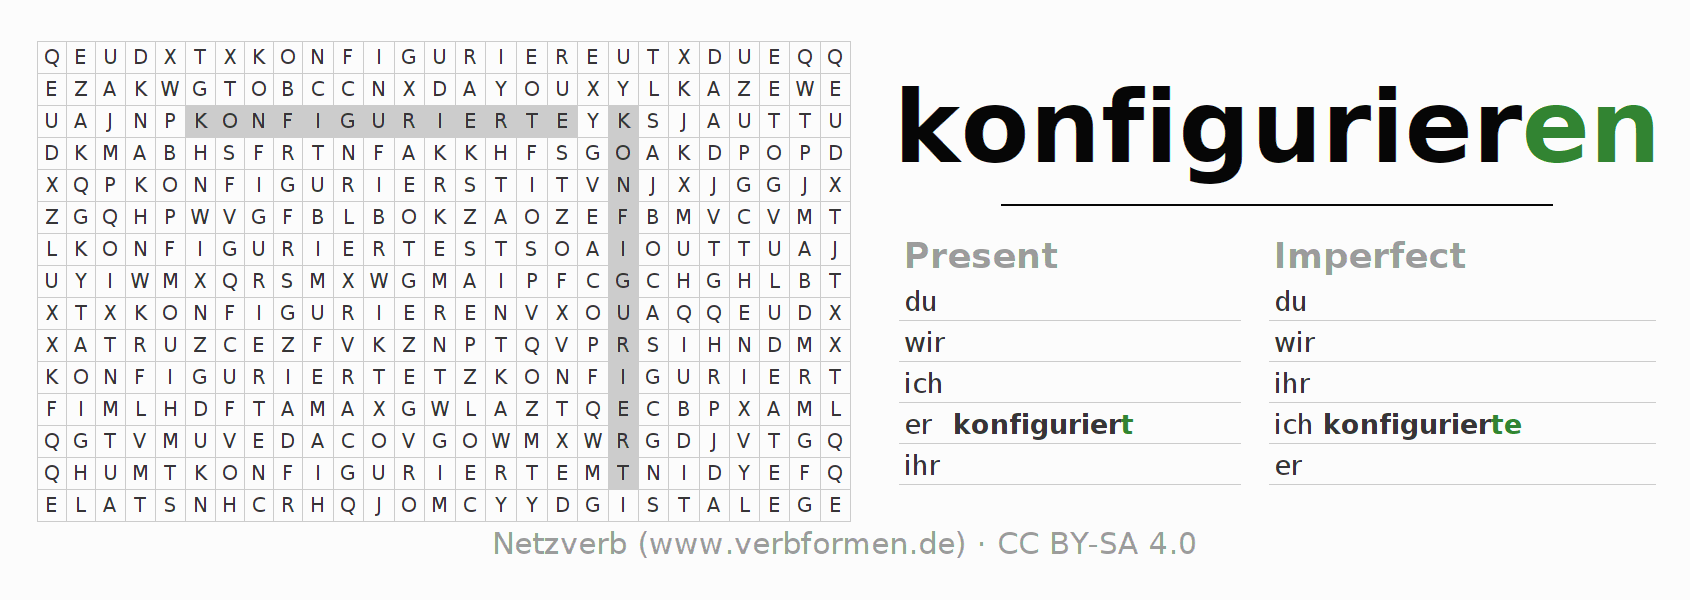 Word search puzzle for the conjugation of the verb konfigurieren